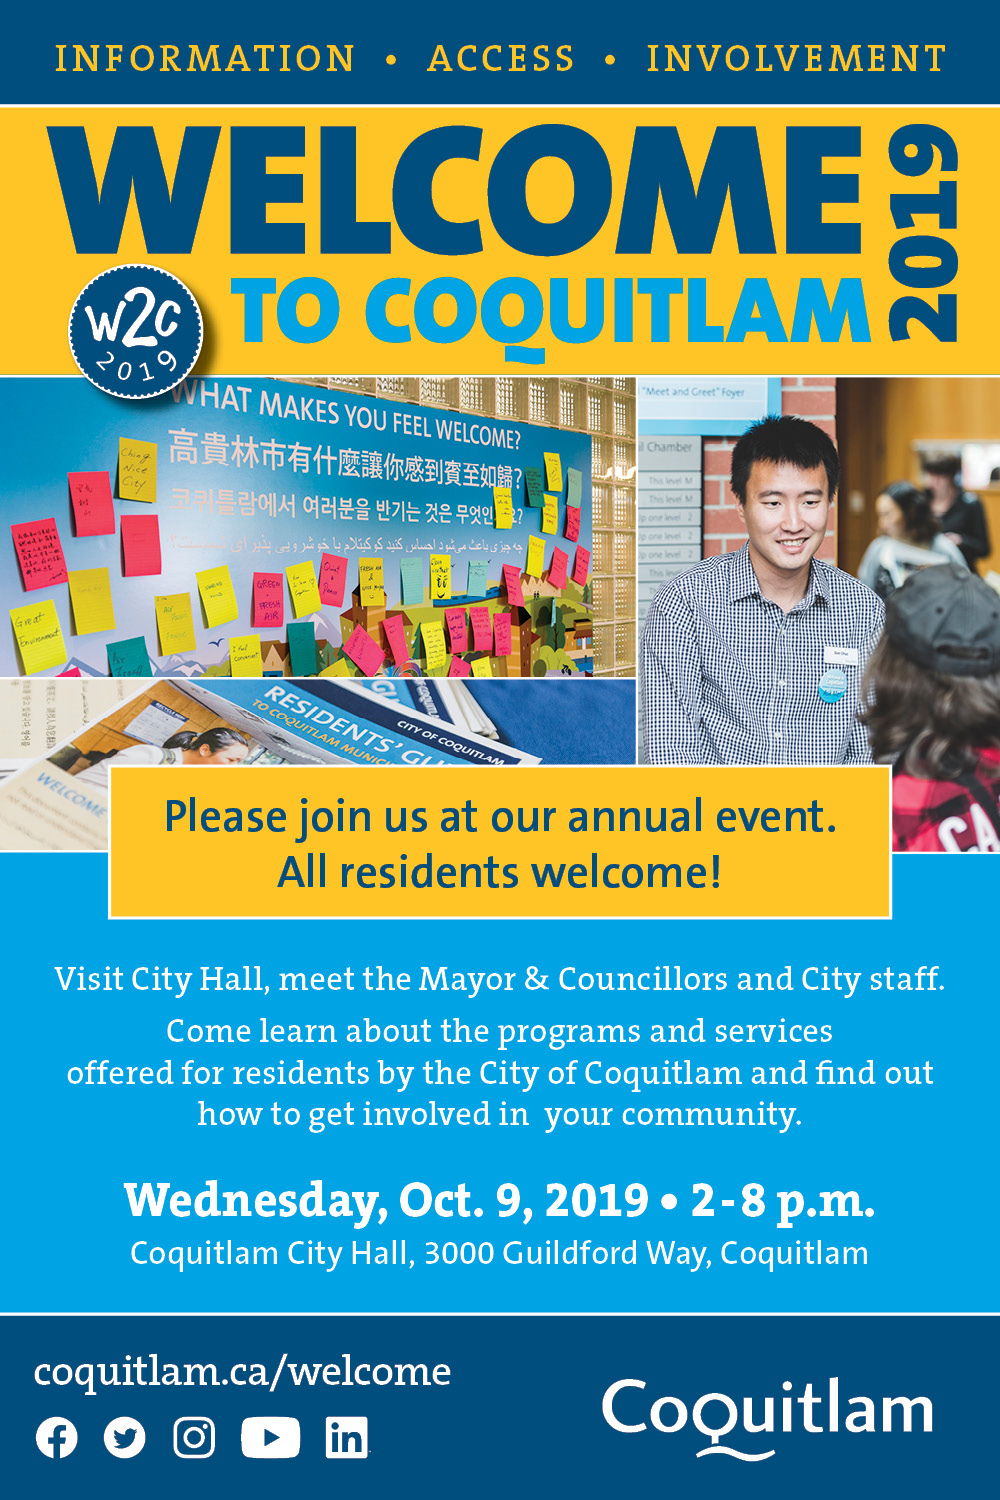 Welcome to Coquitlam event poster